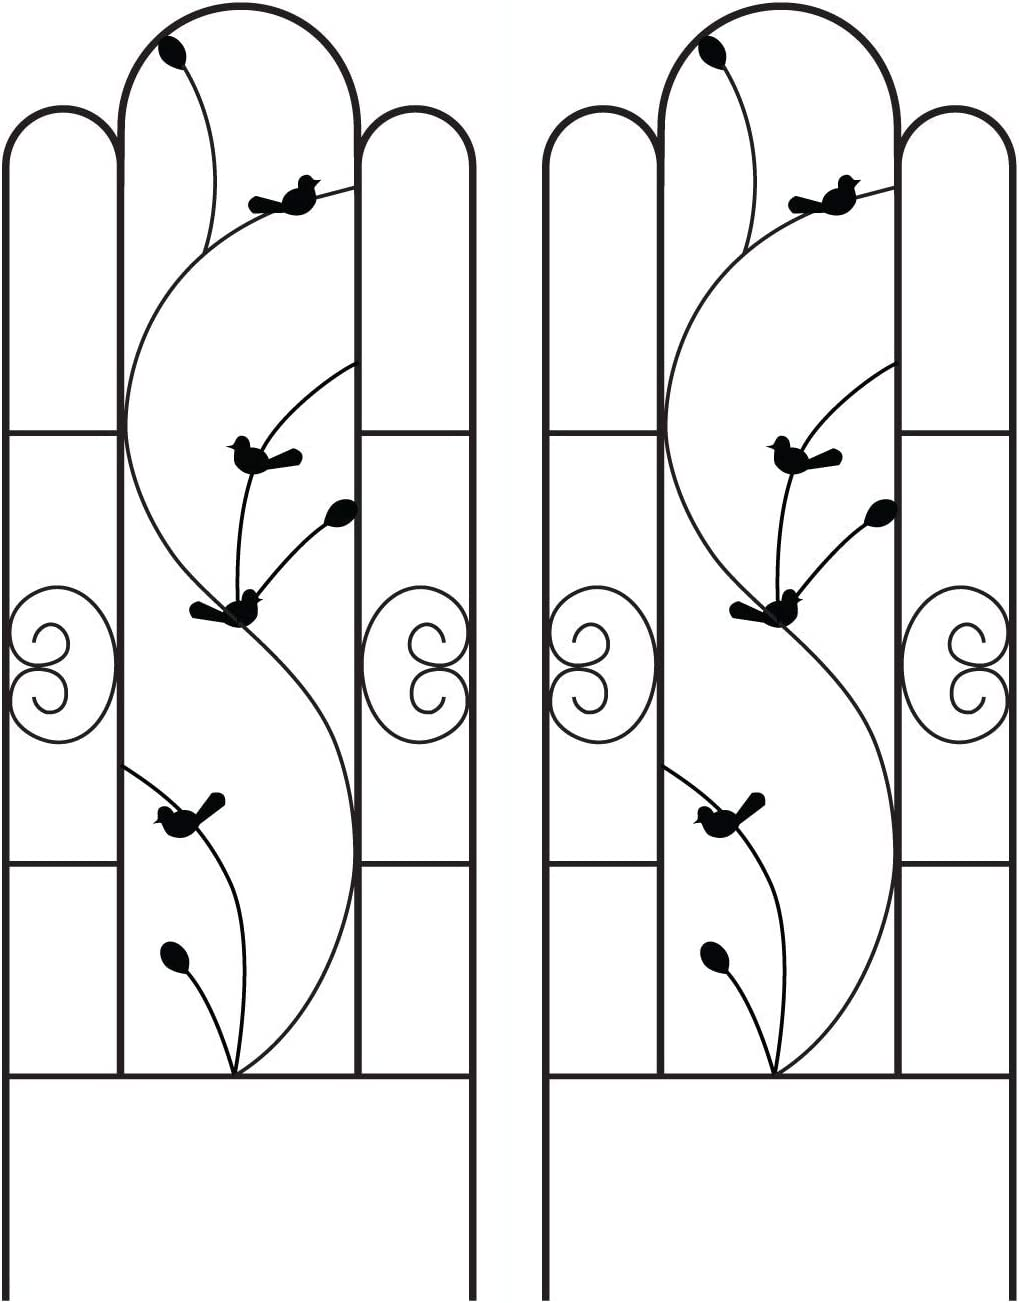 Black Metal Wire Lattice Grid Panels for Cucumber /& Vegetables Garden Trellis for Vines and Climbing Plants Durable /& Sturdy Beautiful Plant Decor Clematis Support Rose Vines